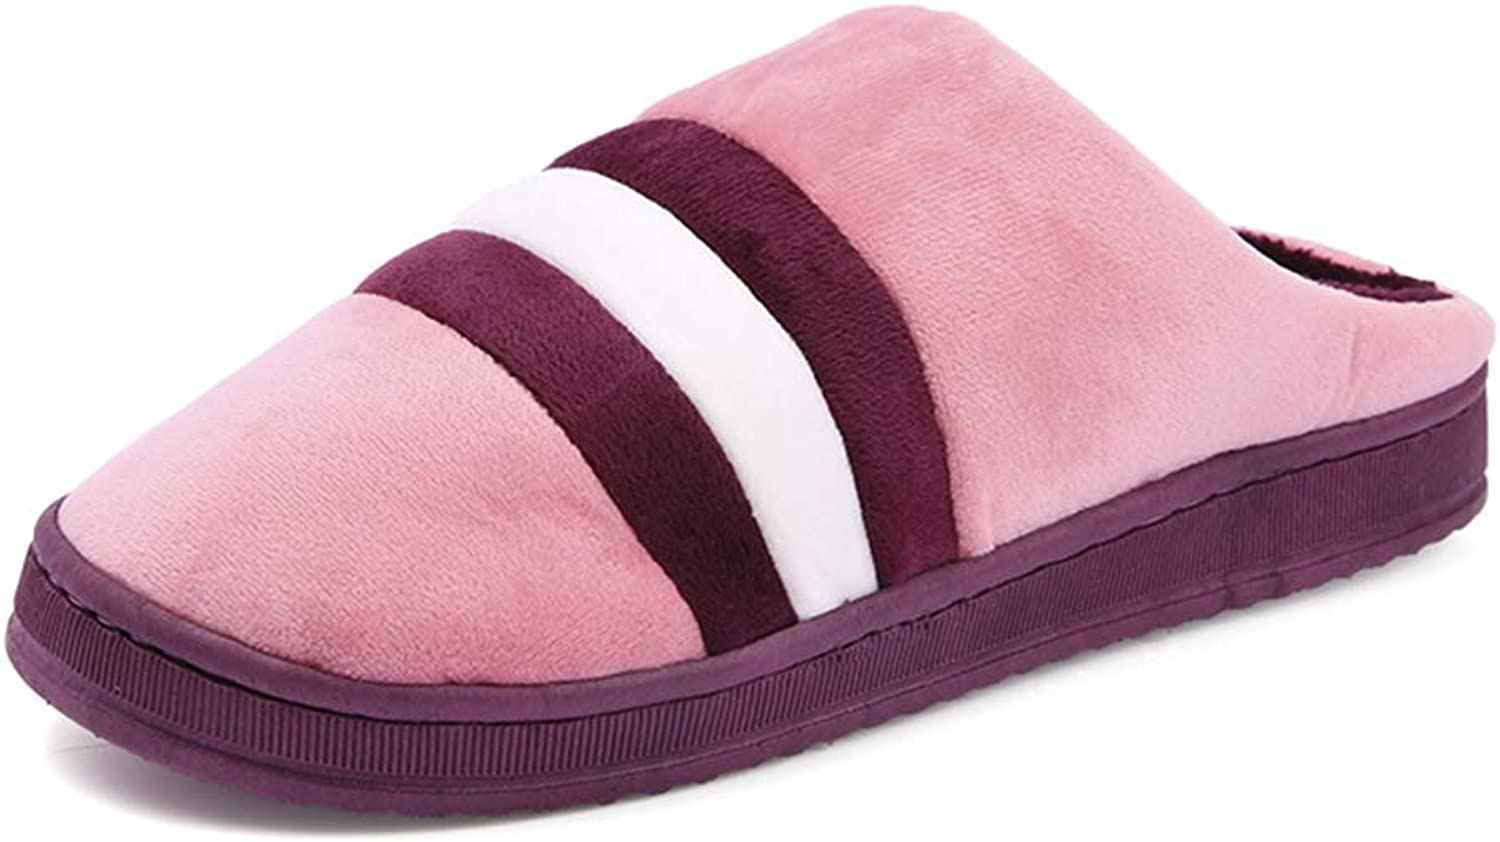 Cute Striped Women Men Couples Home Slipper for Indoor House Bedroom Flats Comfortable Warm Winter shoes Plus